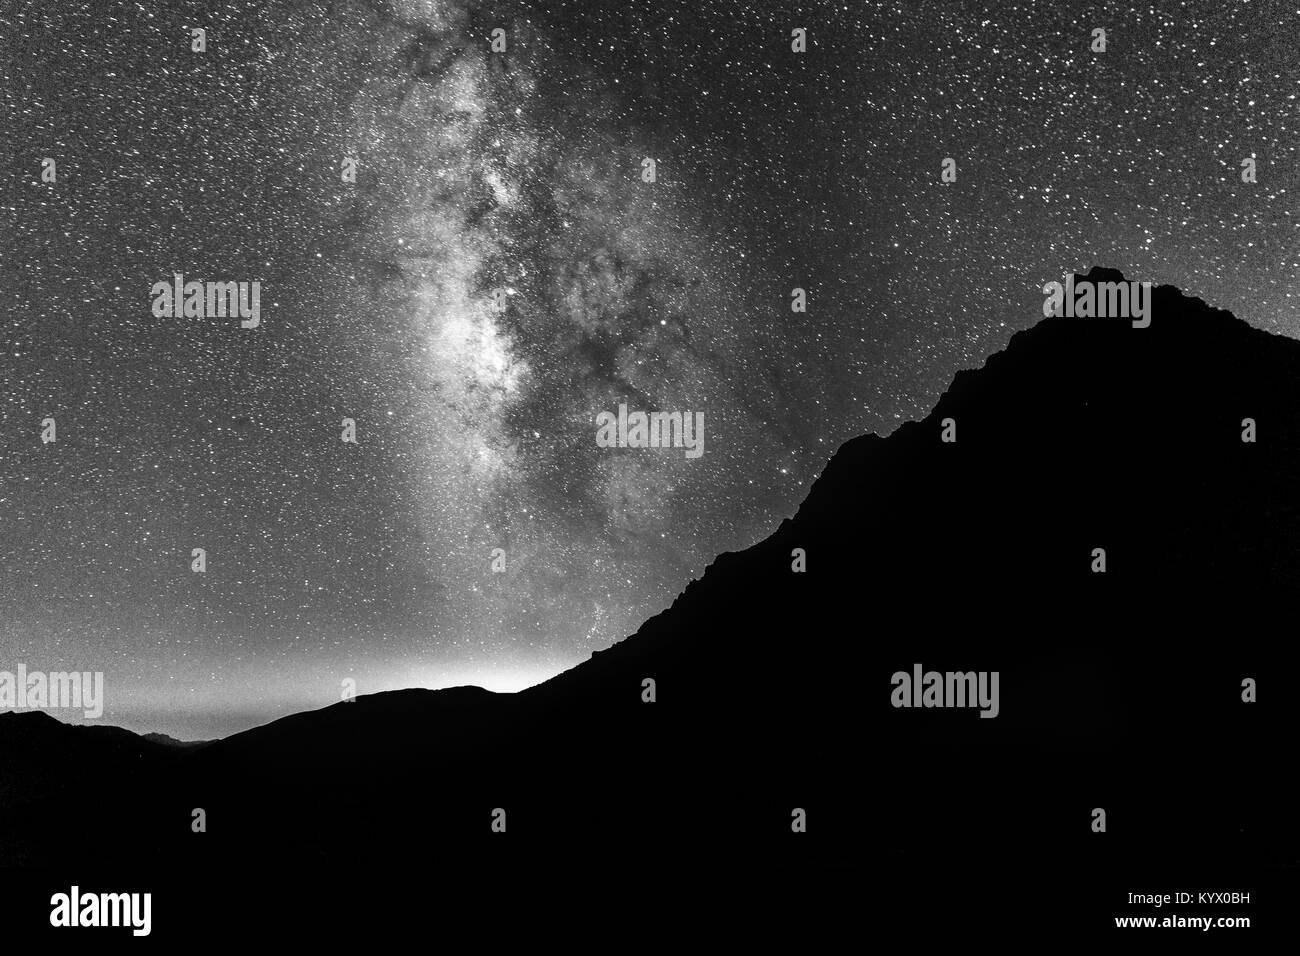 Milky way galaxy as seen from Satsar Campsite on the Kashmir great lakes trek at Sonamarg, Jammu and Kashmir, India. - Stock Image